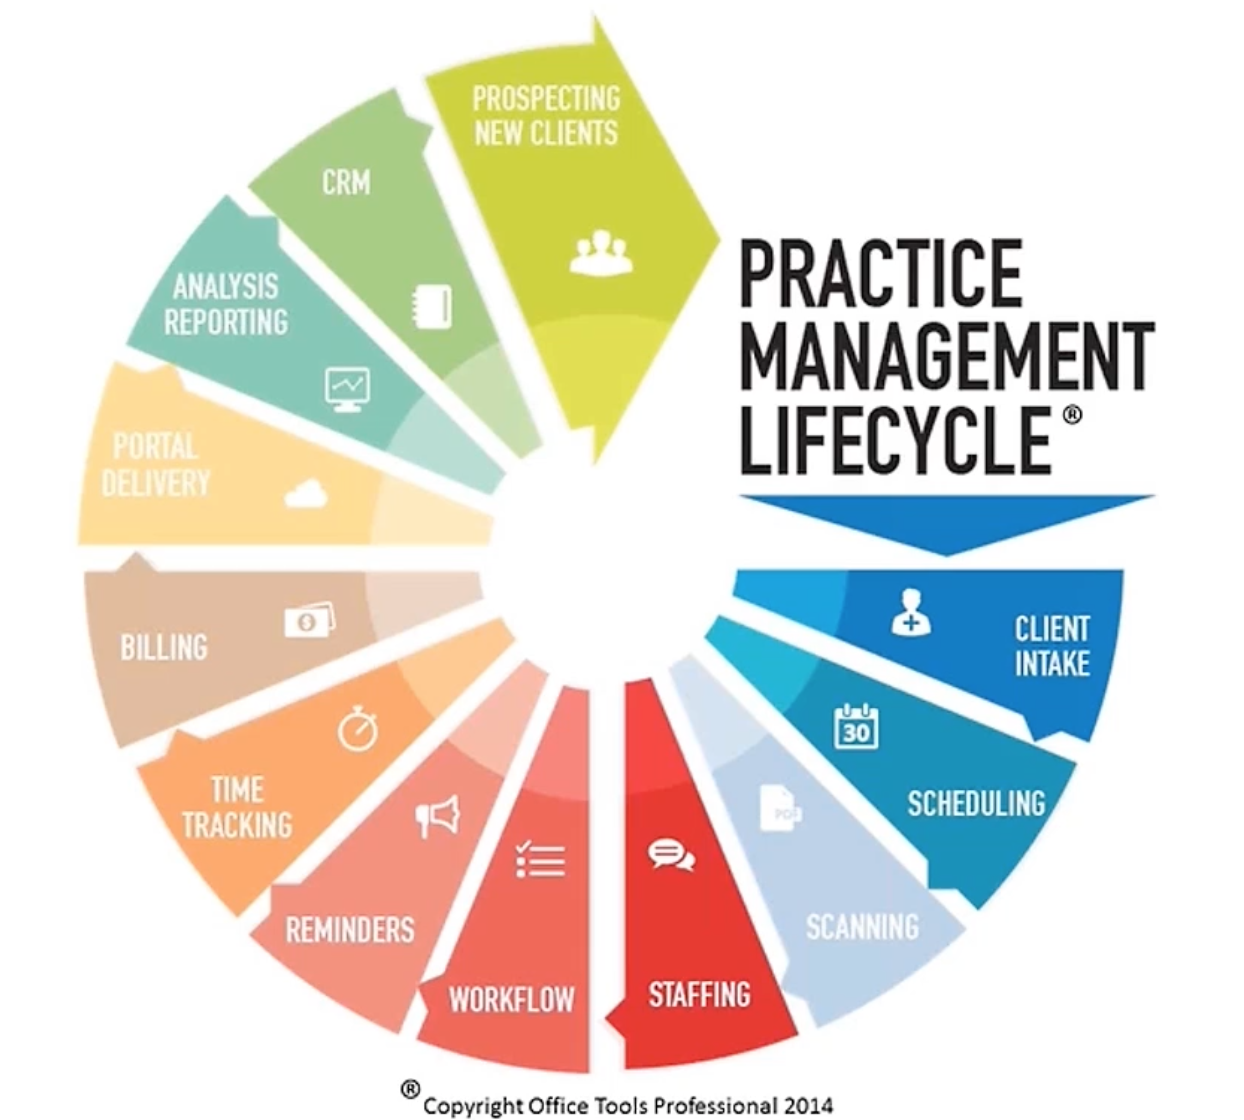 the practice management lifecycle framework